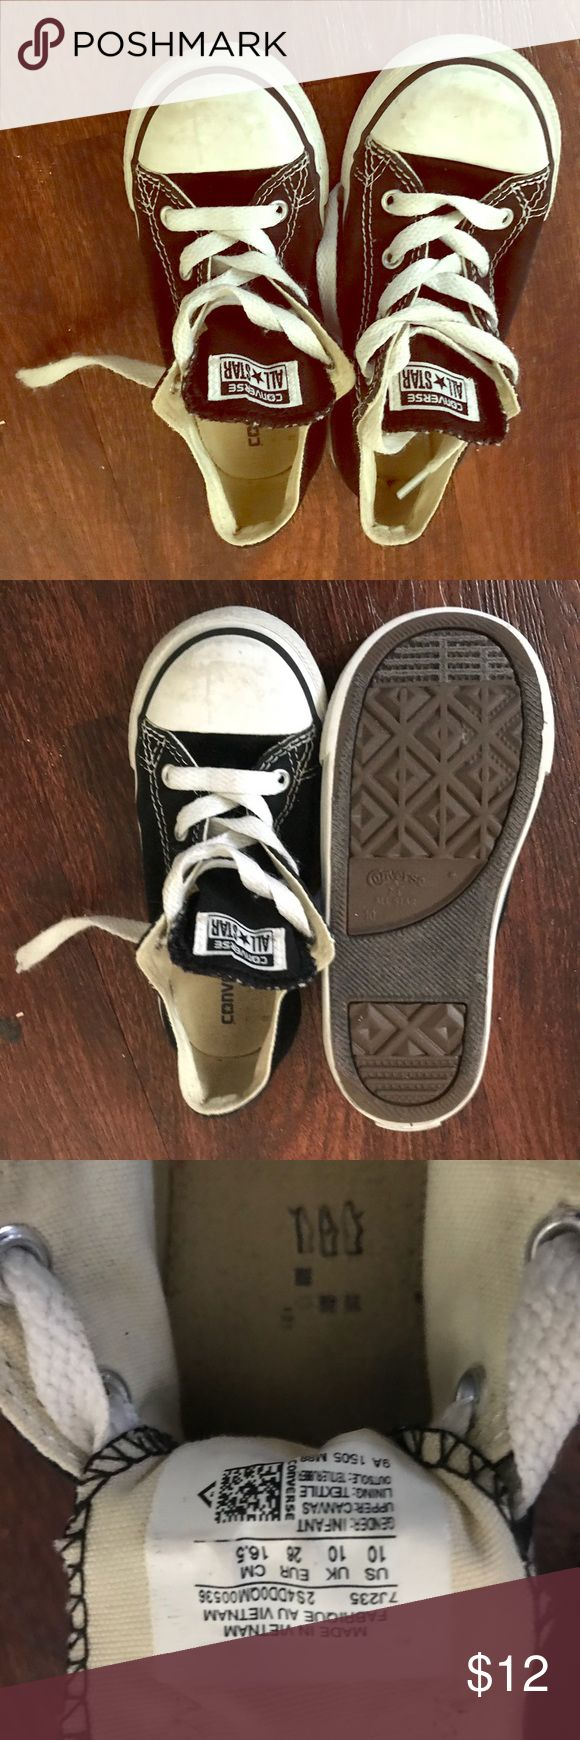 Little boys Converse Allstars Still have a lot of love to give! The tips are a little scuffed but the shoe is still in great condition ❤️ Converse Shoes Sneakers